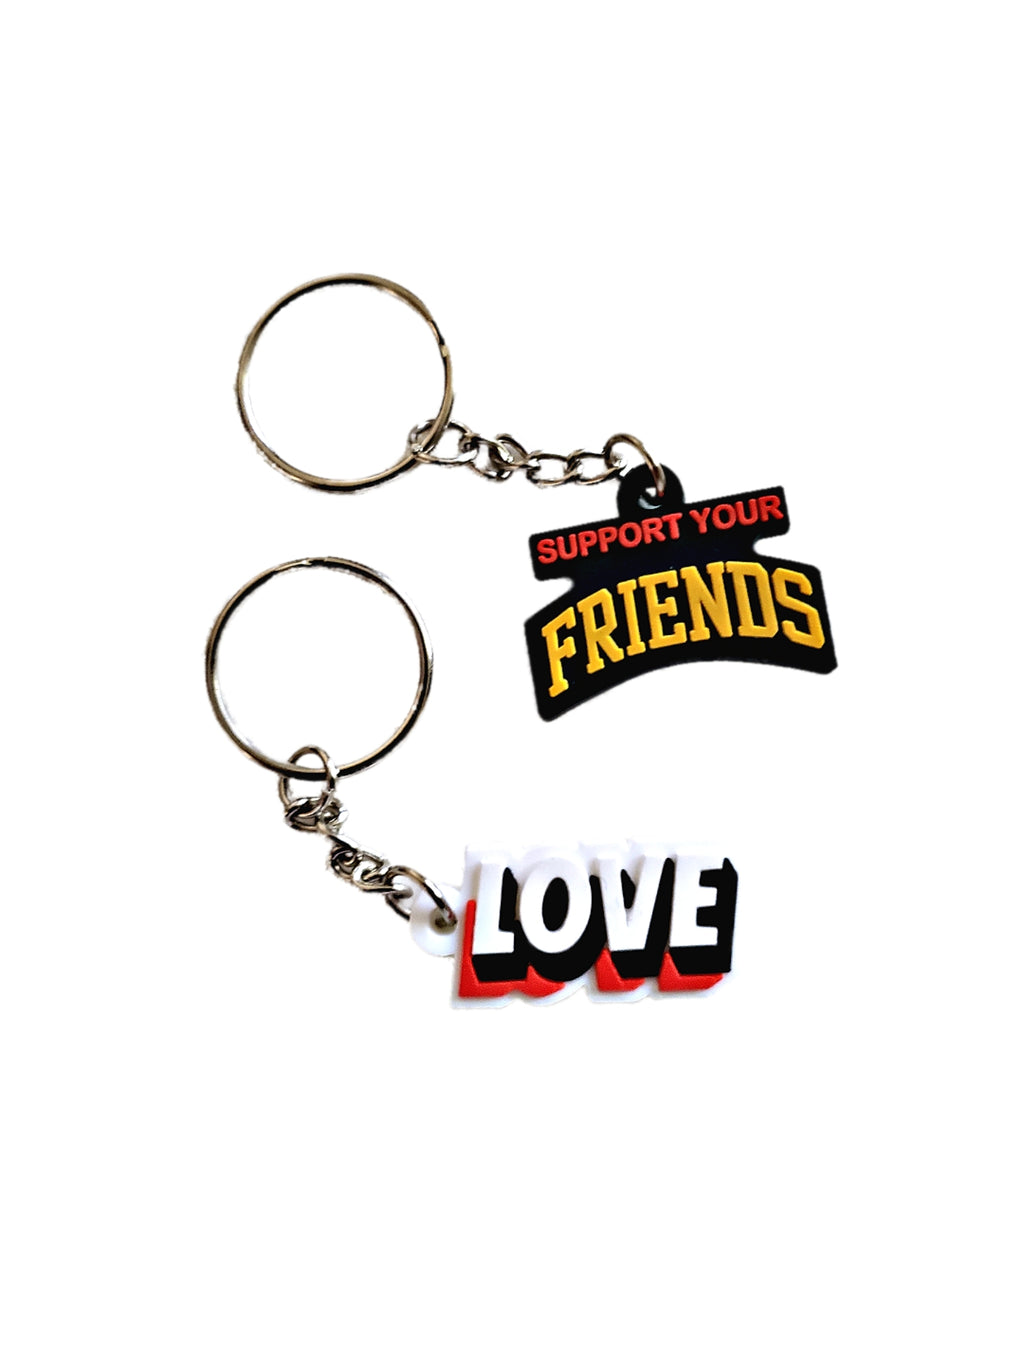 SPREAD LOVE & SYF KEY CHAIN PACKAGE